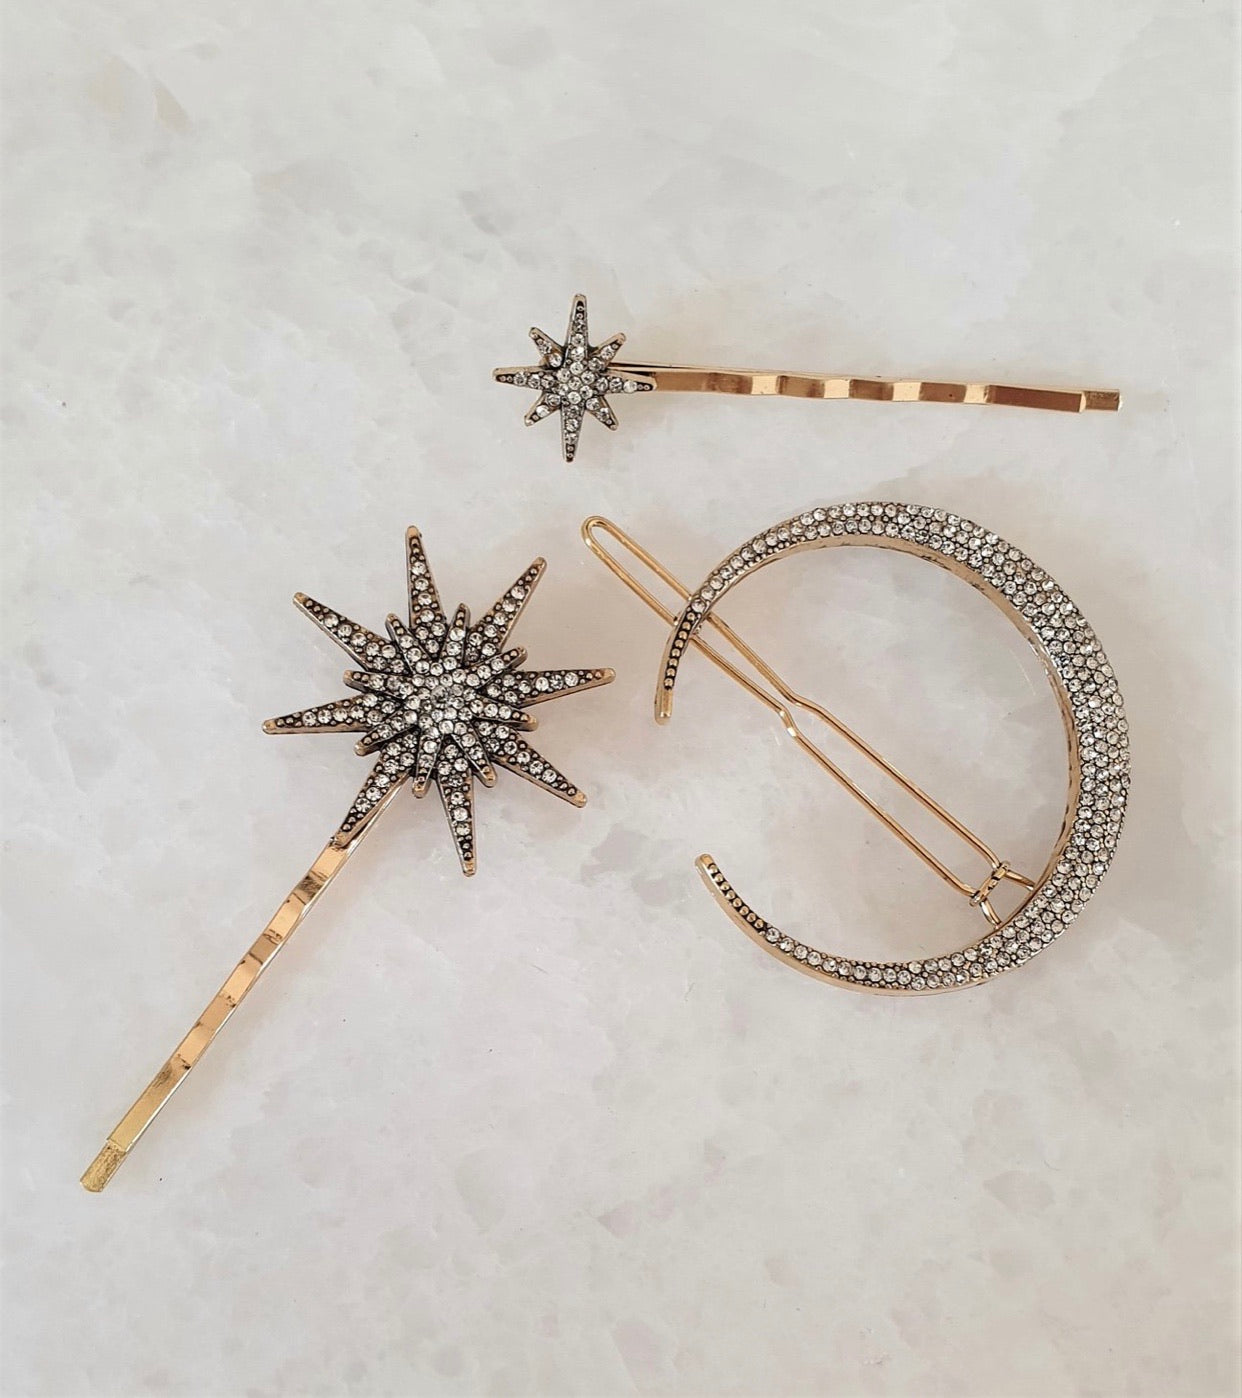 THE ASTRID HAIR CLIP SET